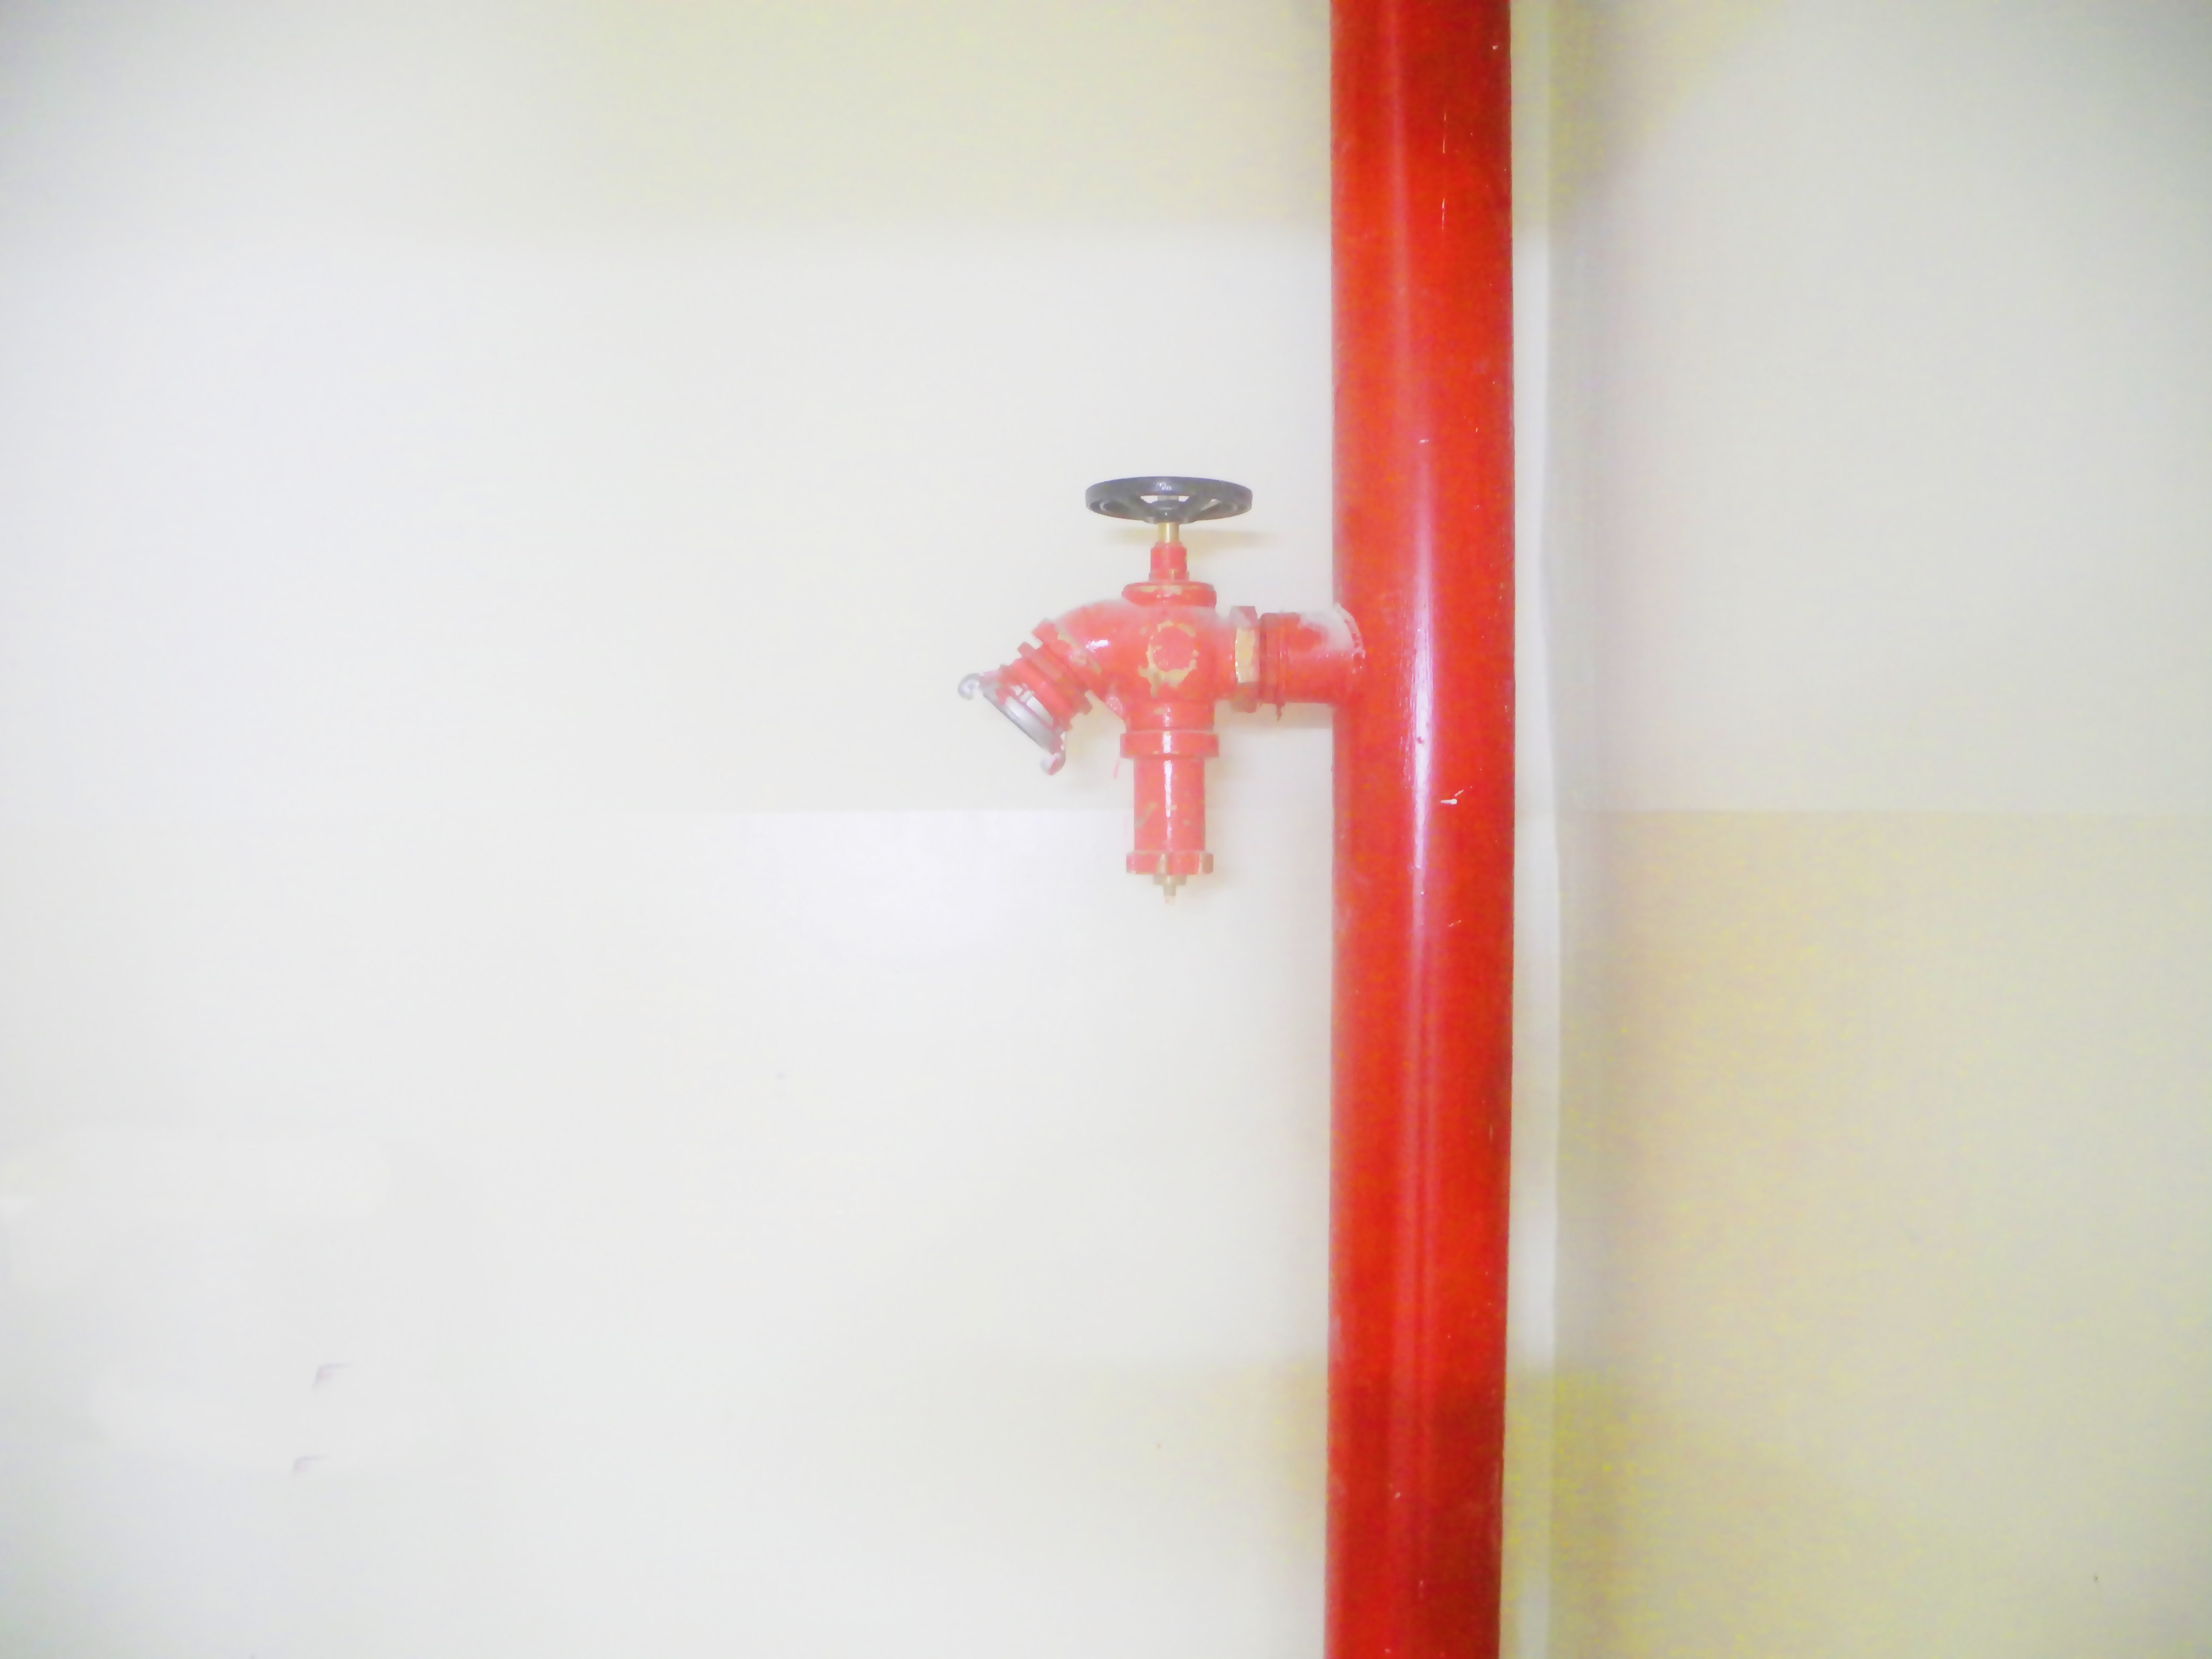 fire-protection-system-image-17